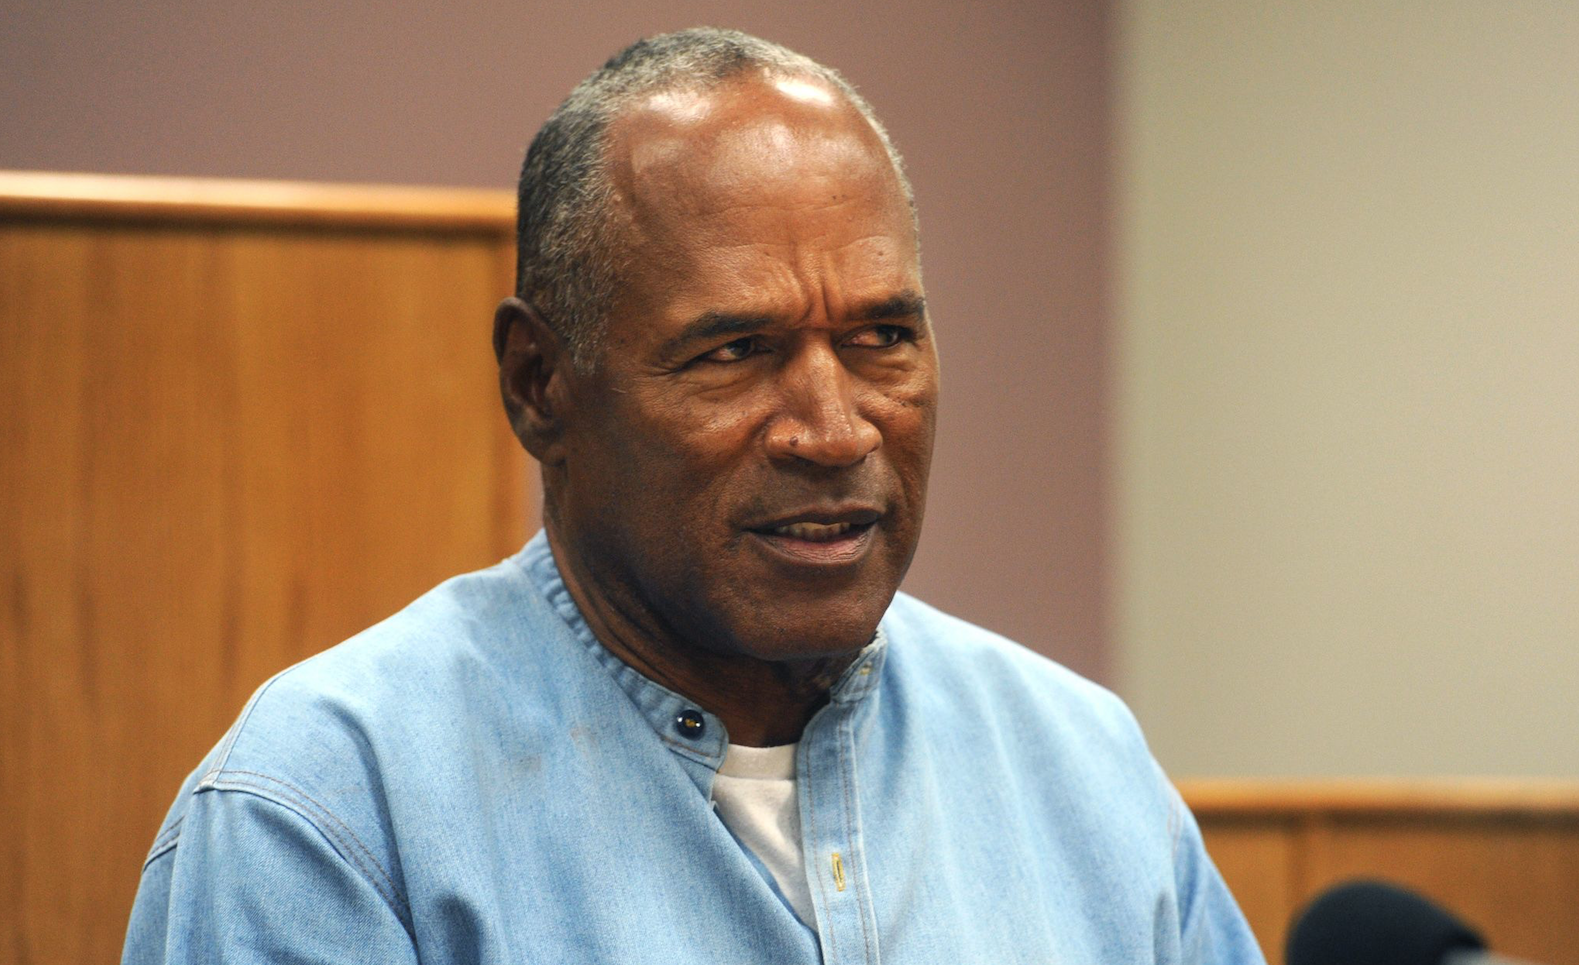 FOX to air 2-hour 'OJ Simpson: The Confession' special